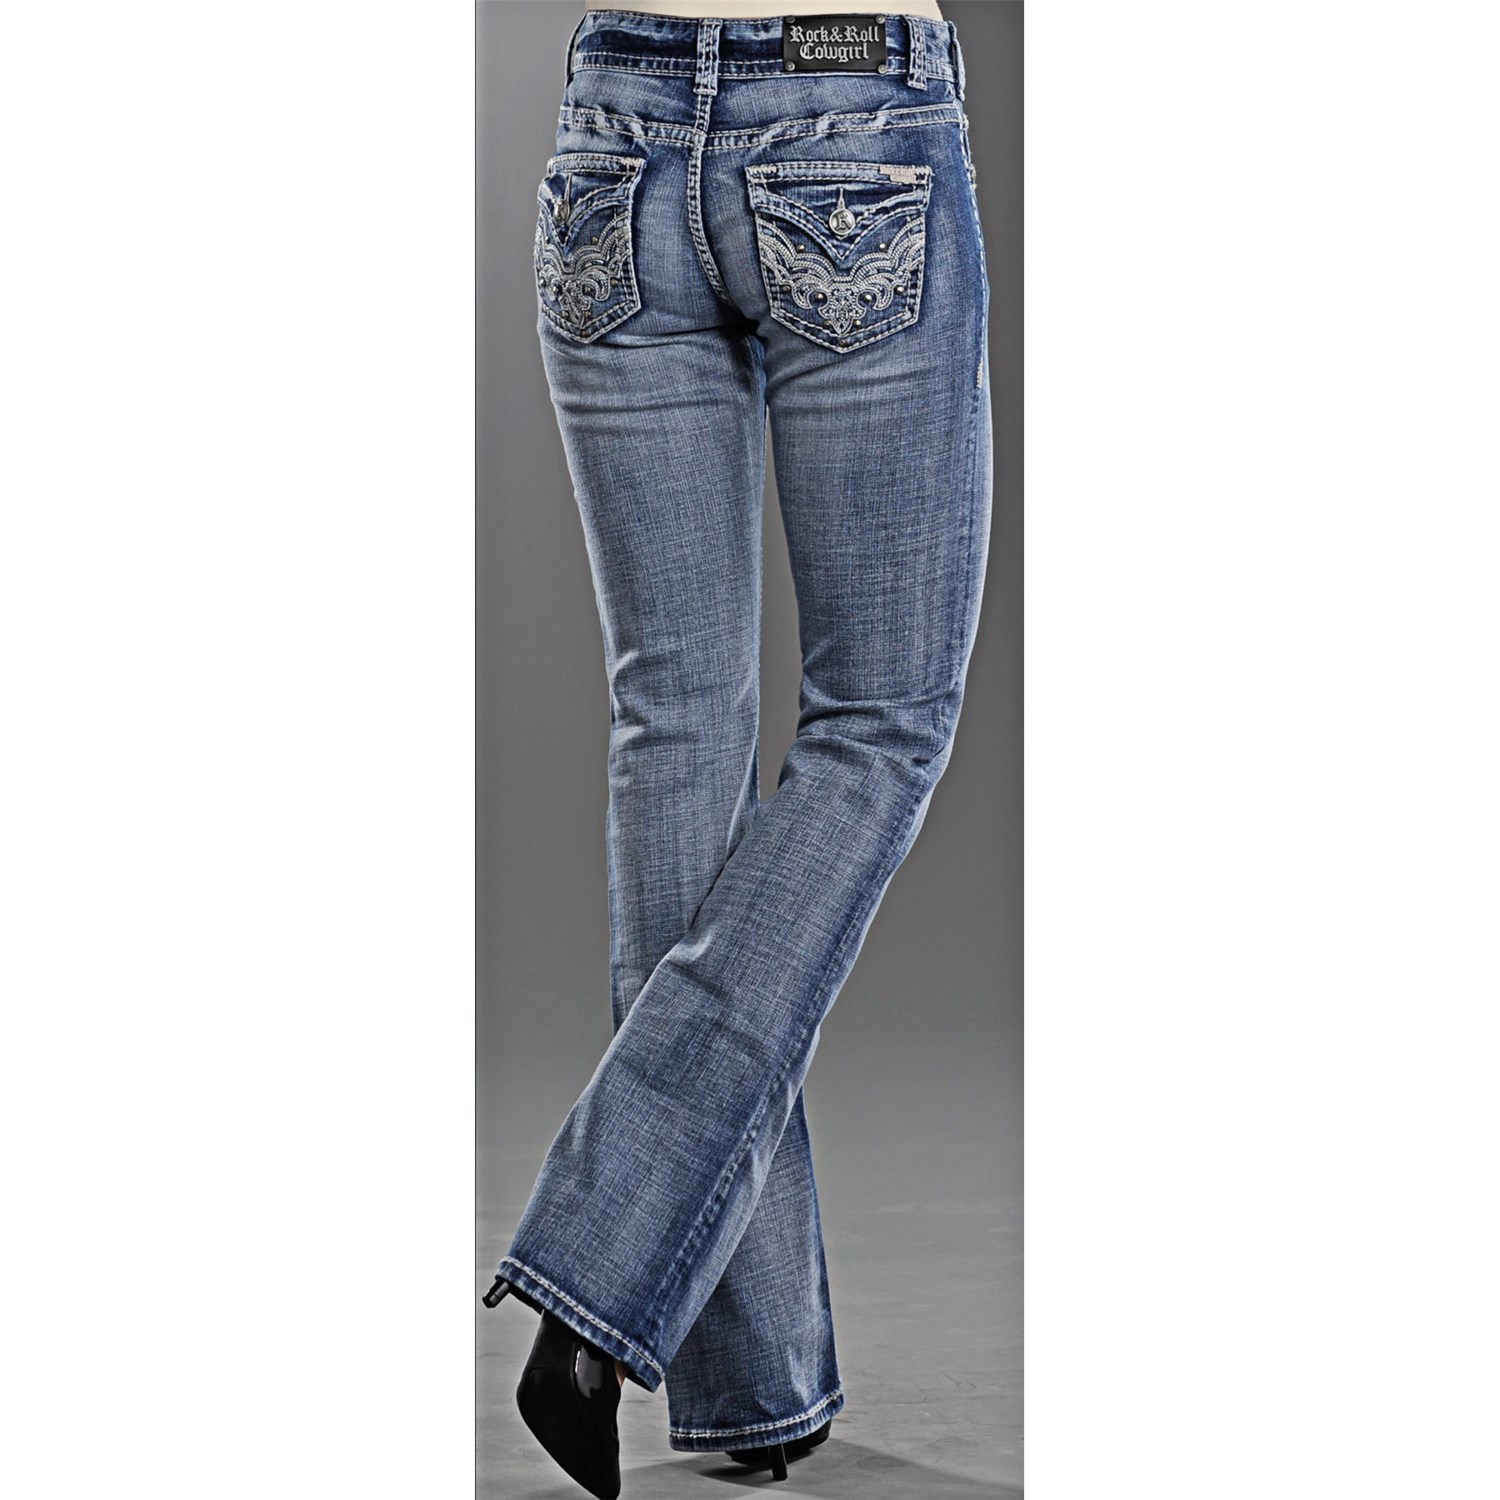 Rock roll cowgirl swirl embroidered flap pocket jeans